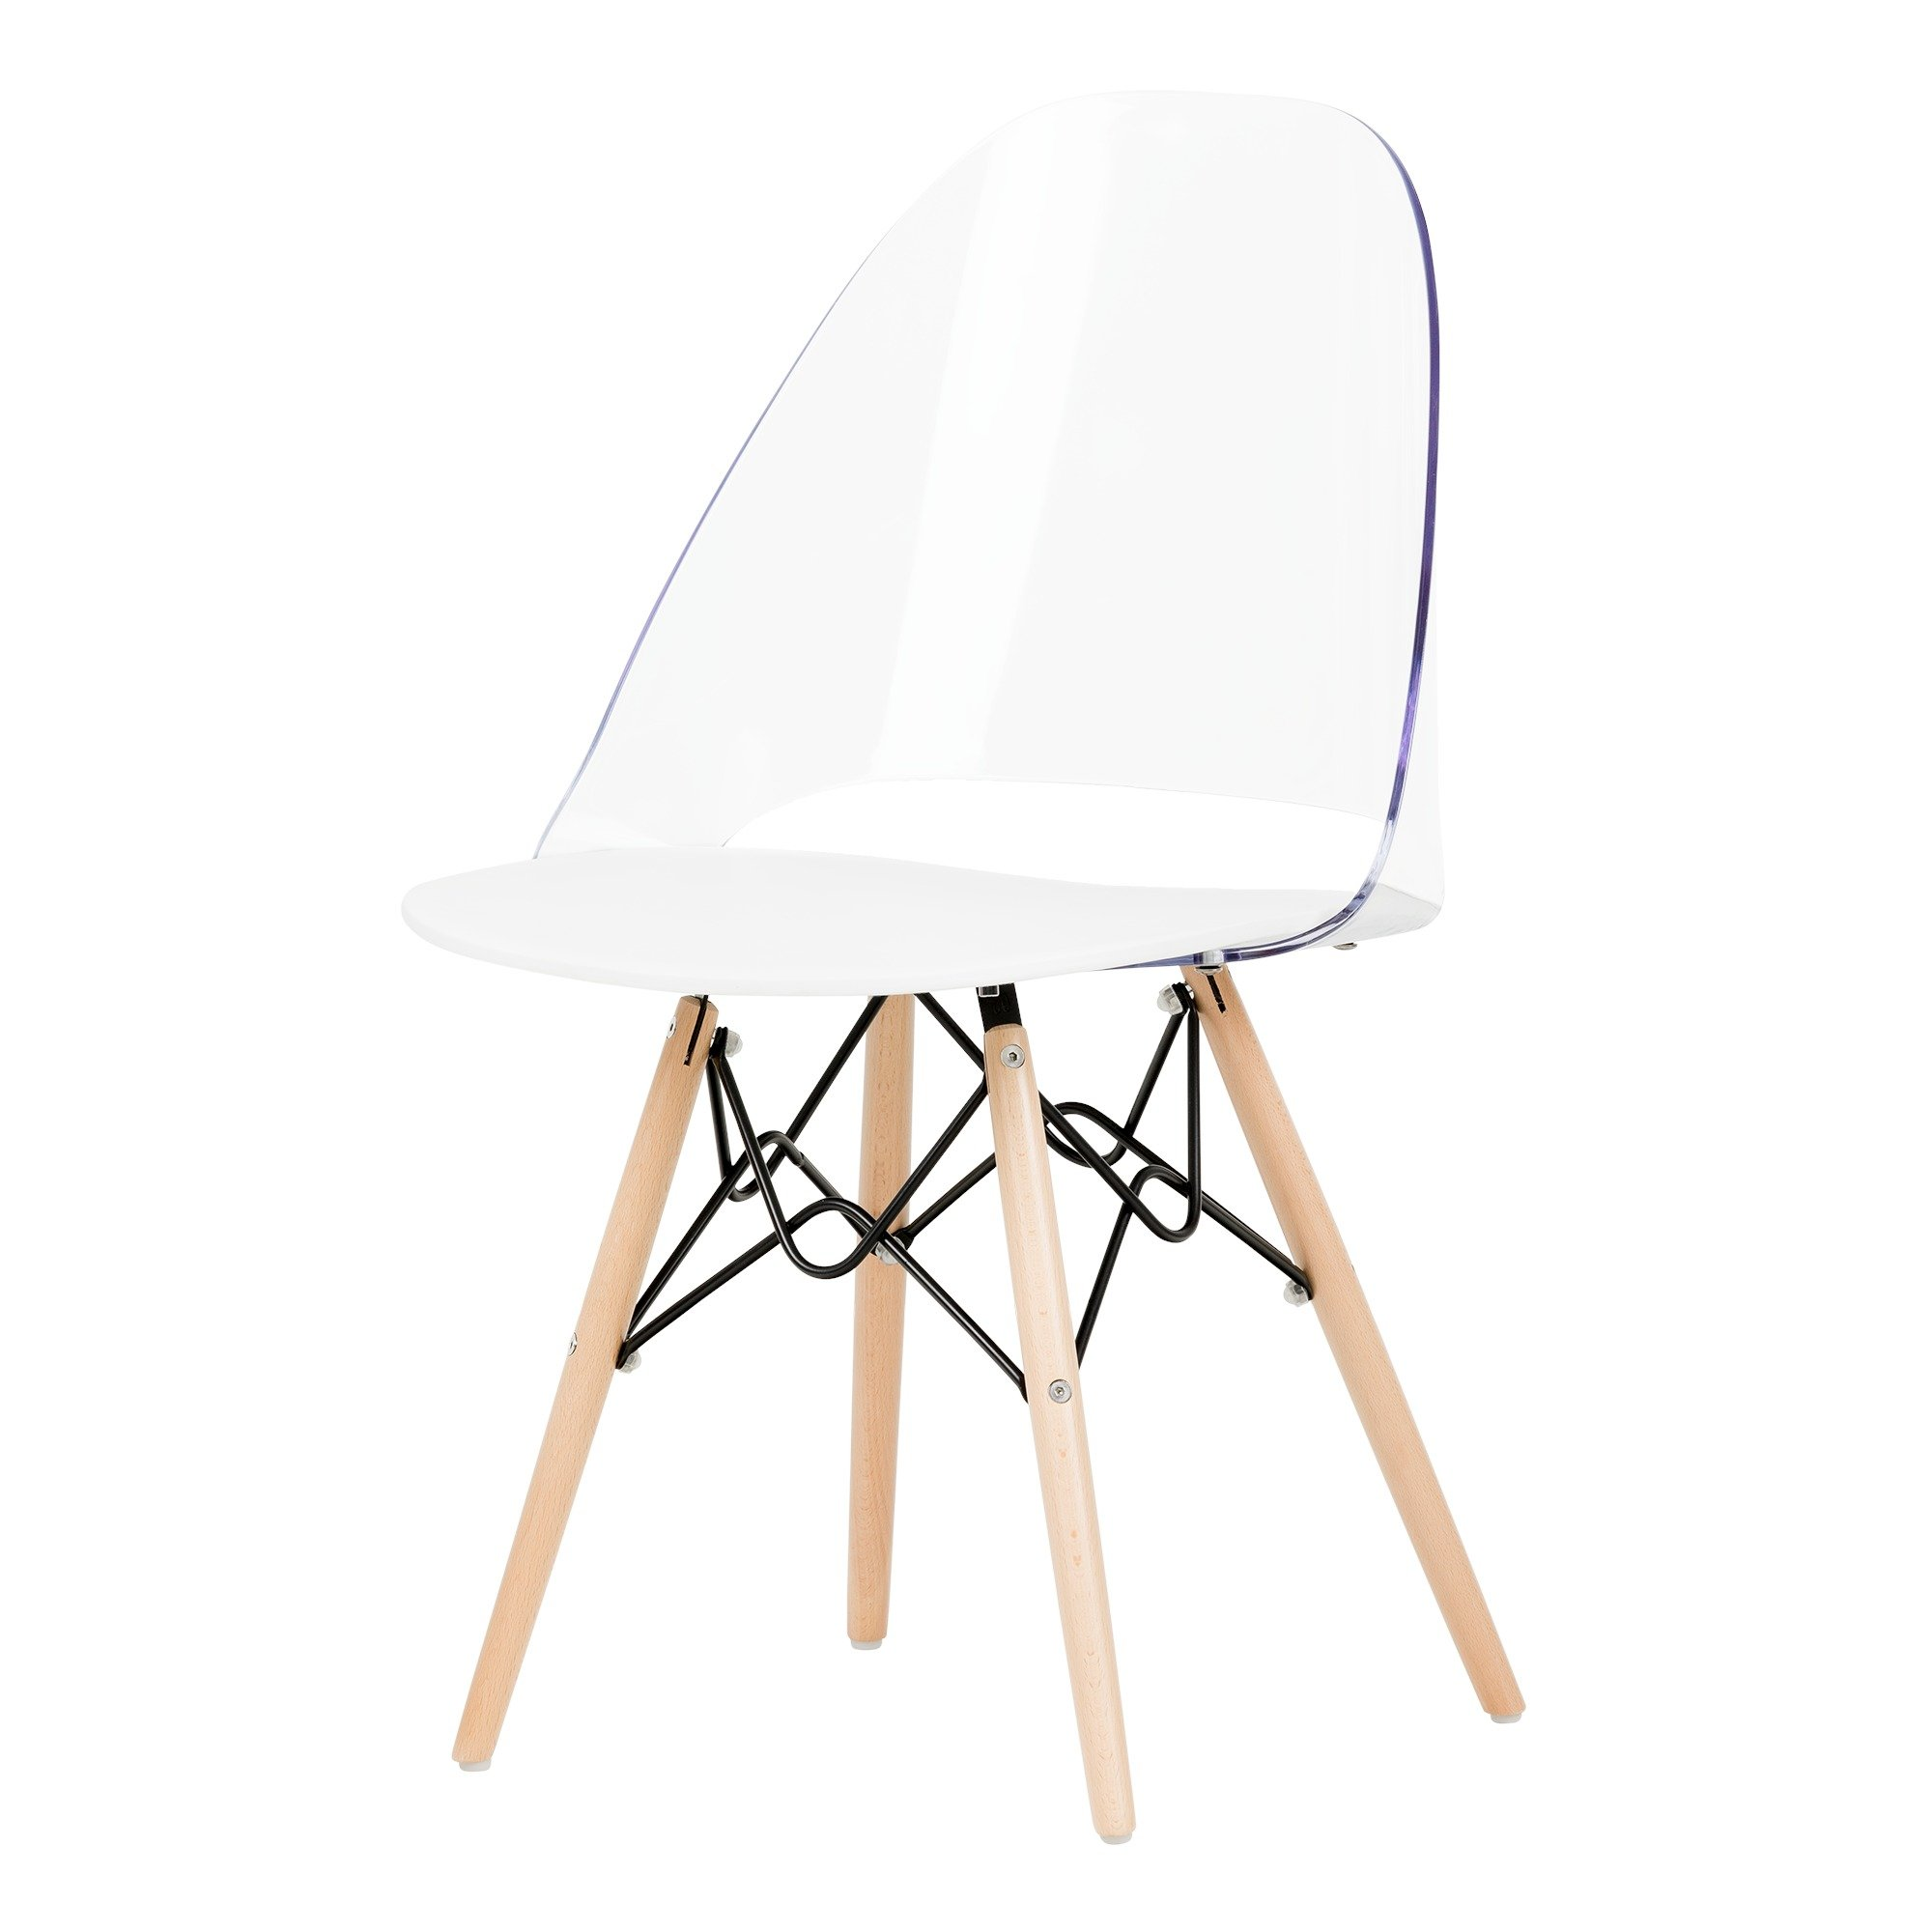 South Shore 100275 Annexe Eiffel Style Office Chair, Clear and White